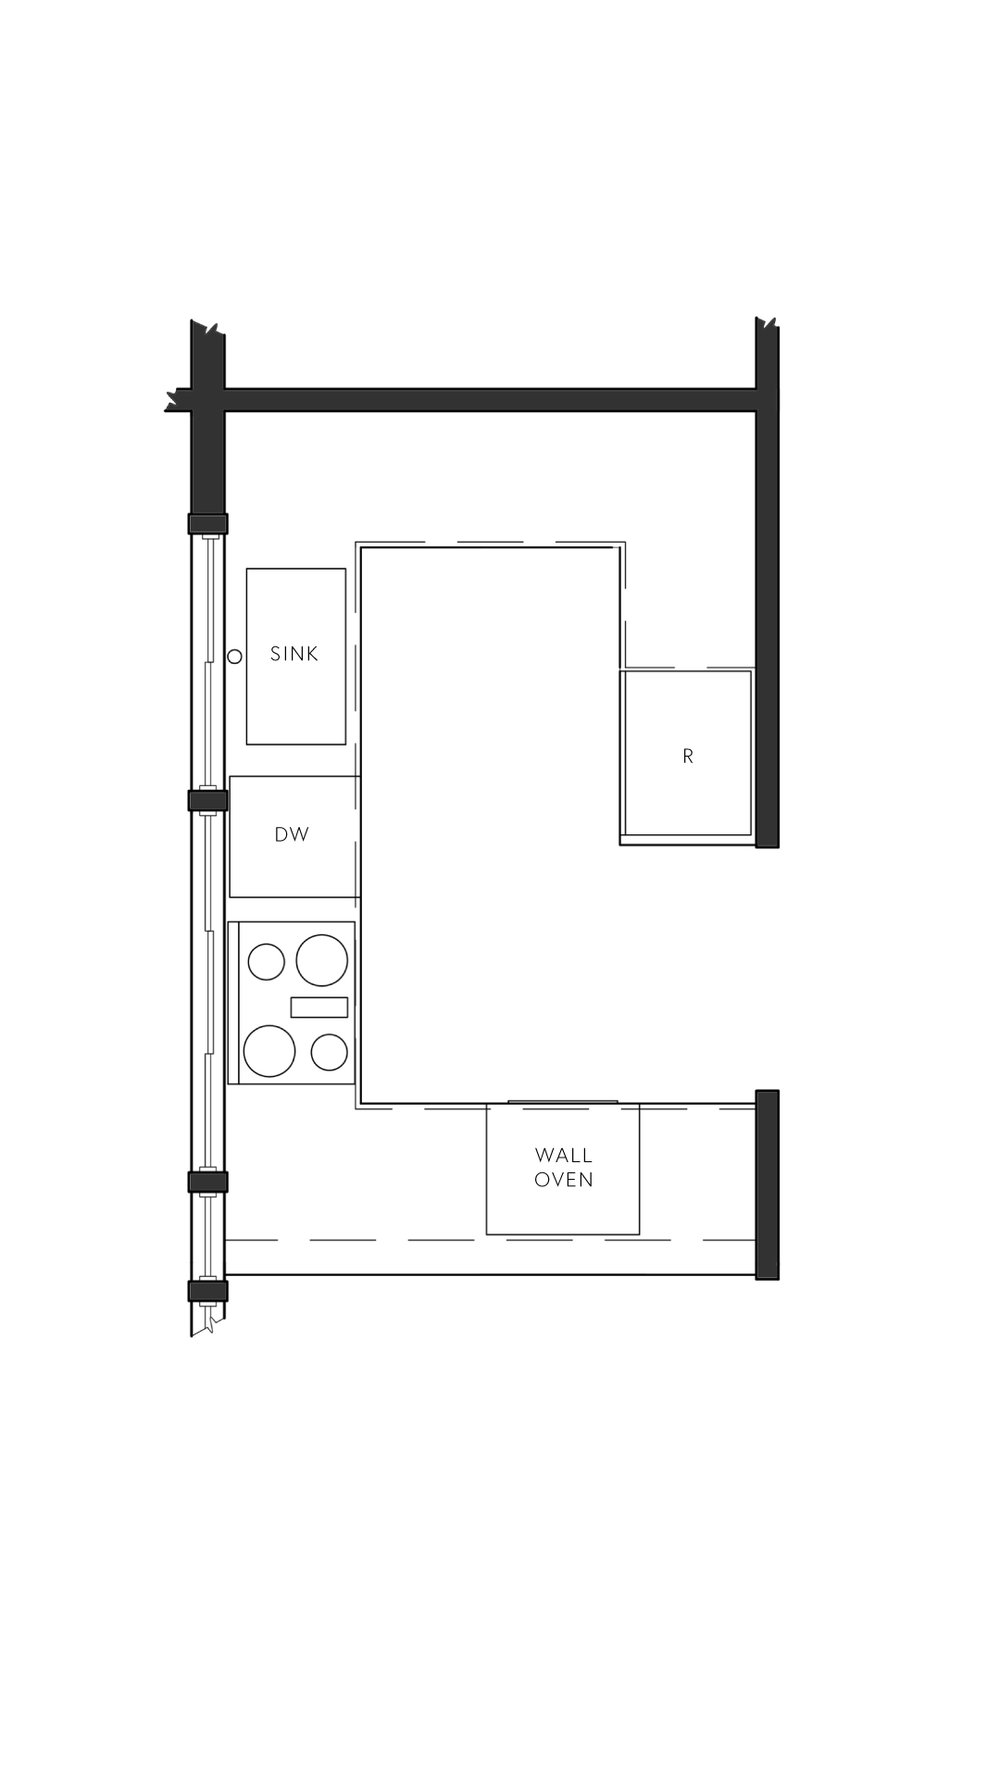 U Shaped Galley kitchen layout Design by The Savvy Heart